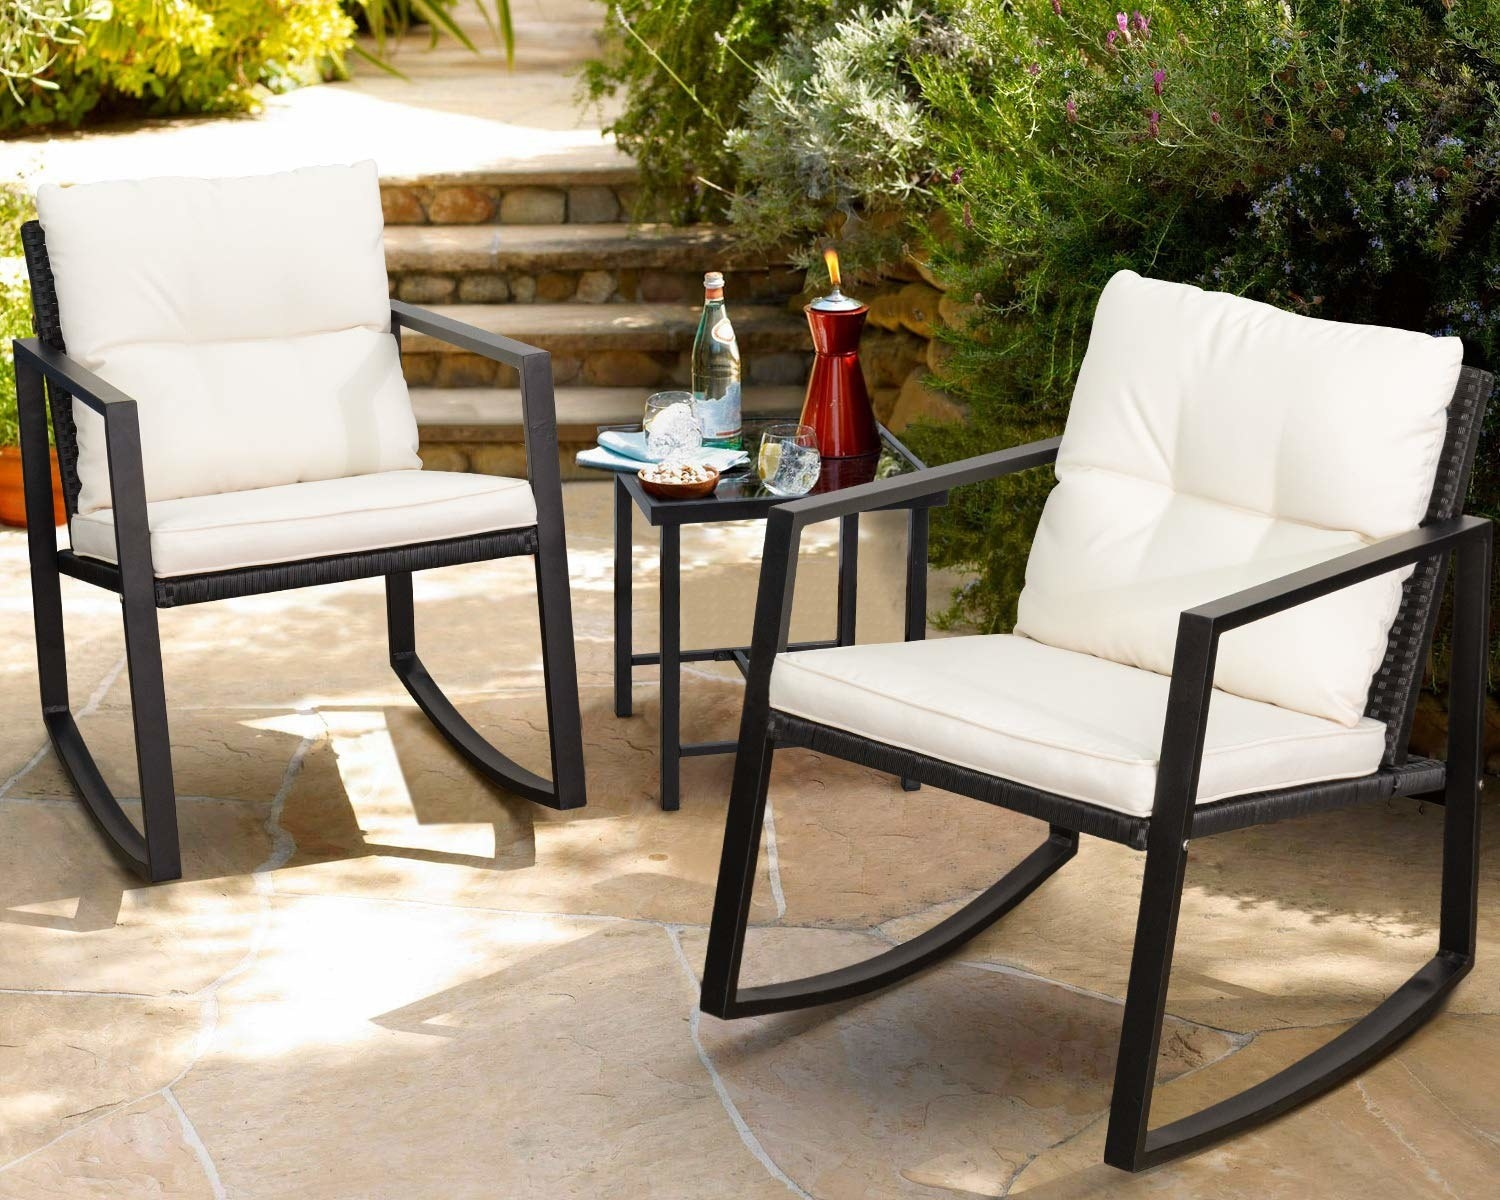 A set of two black-framed outdoor rocking chairs with white cushions